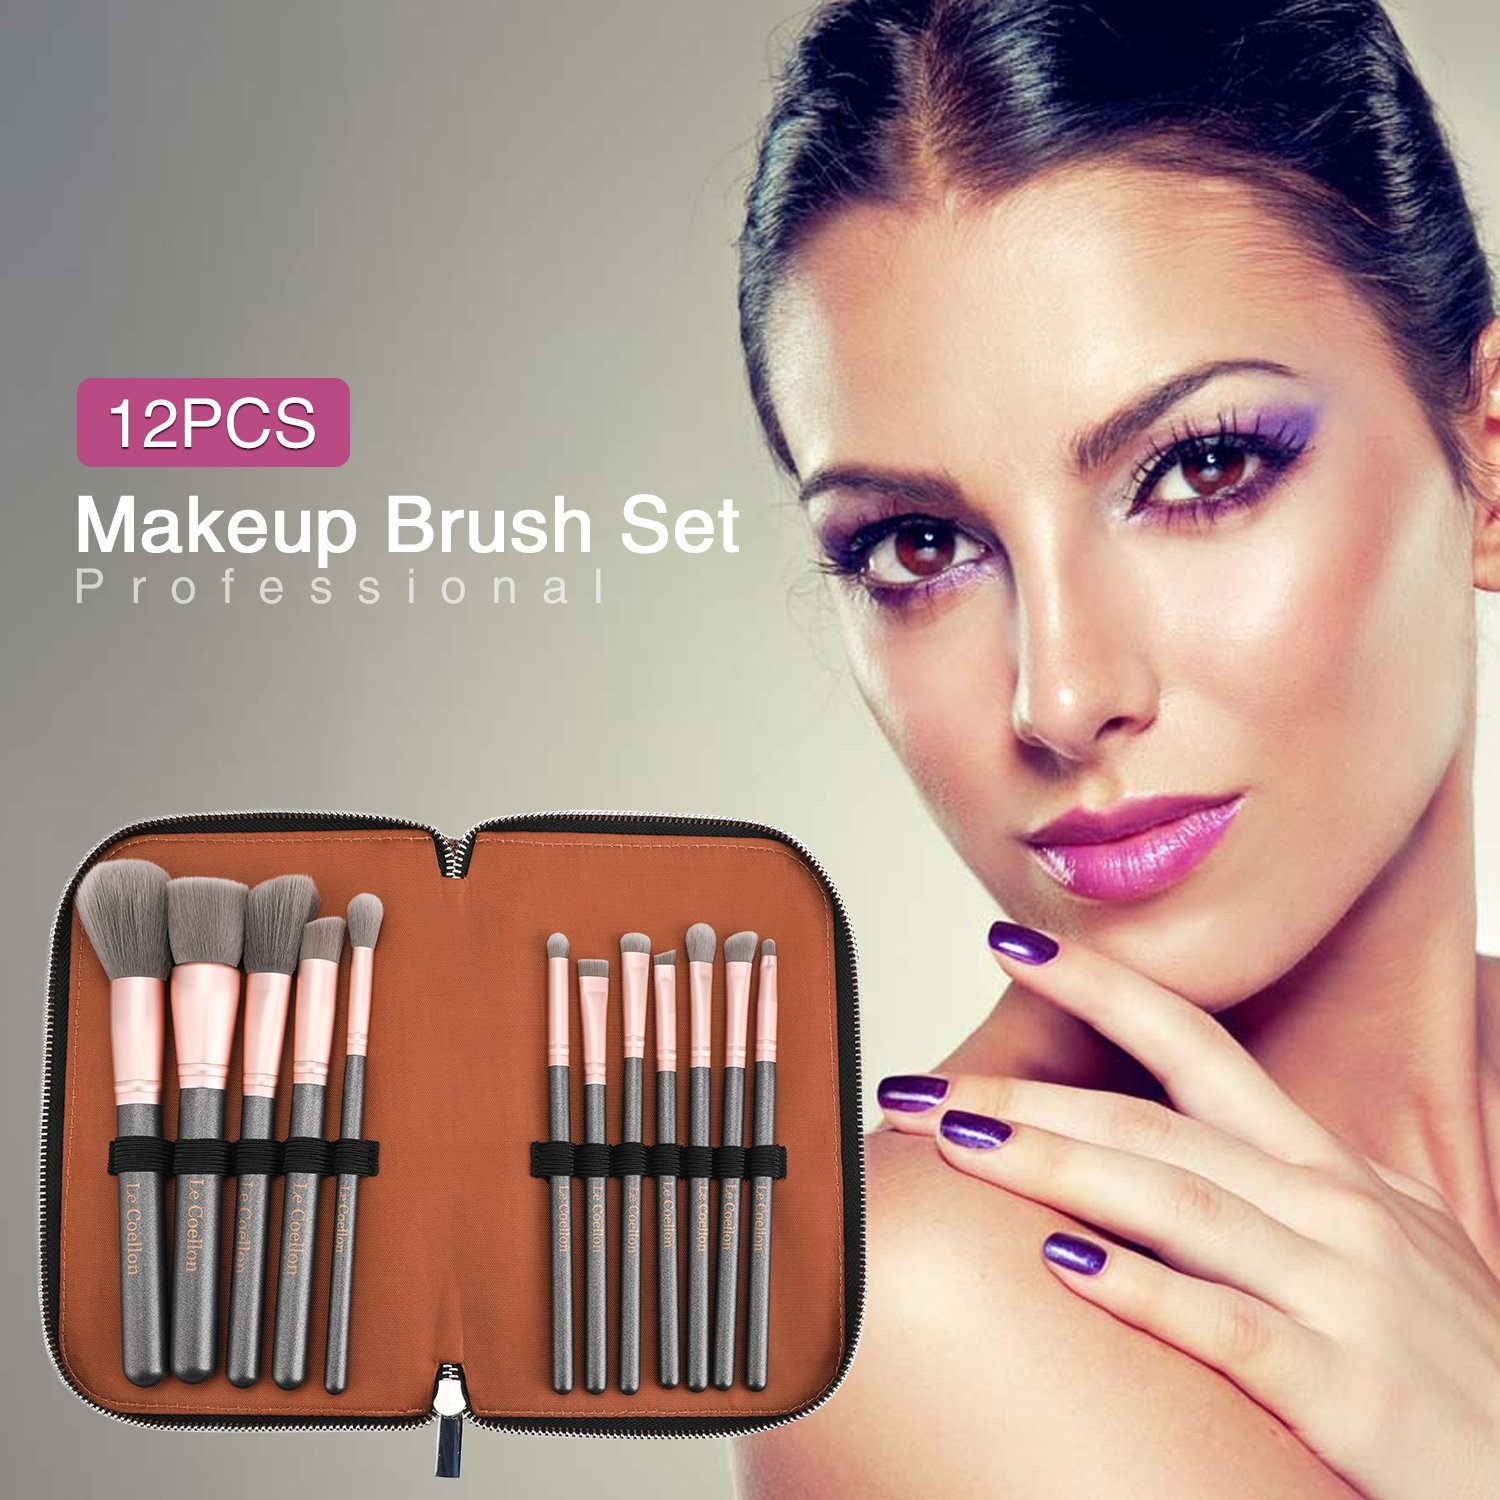 Le Coellon Makeup Brushes Set Professional 12PCS Wooden Handle Antibacterial Brush Face Foundation Concealer Blush Eyeshadow Eyeliner Brush Kit with Bag Cosmetics Tool